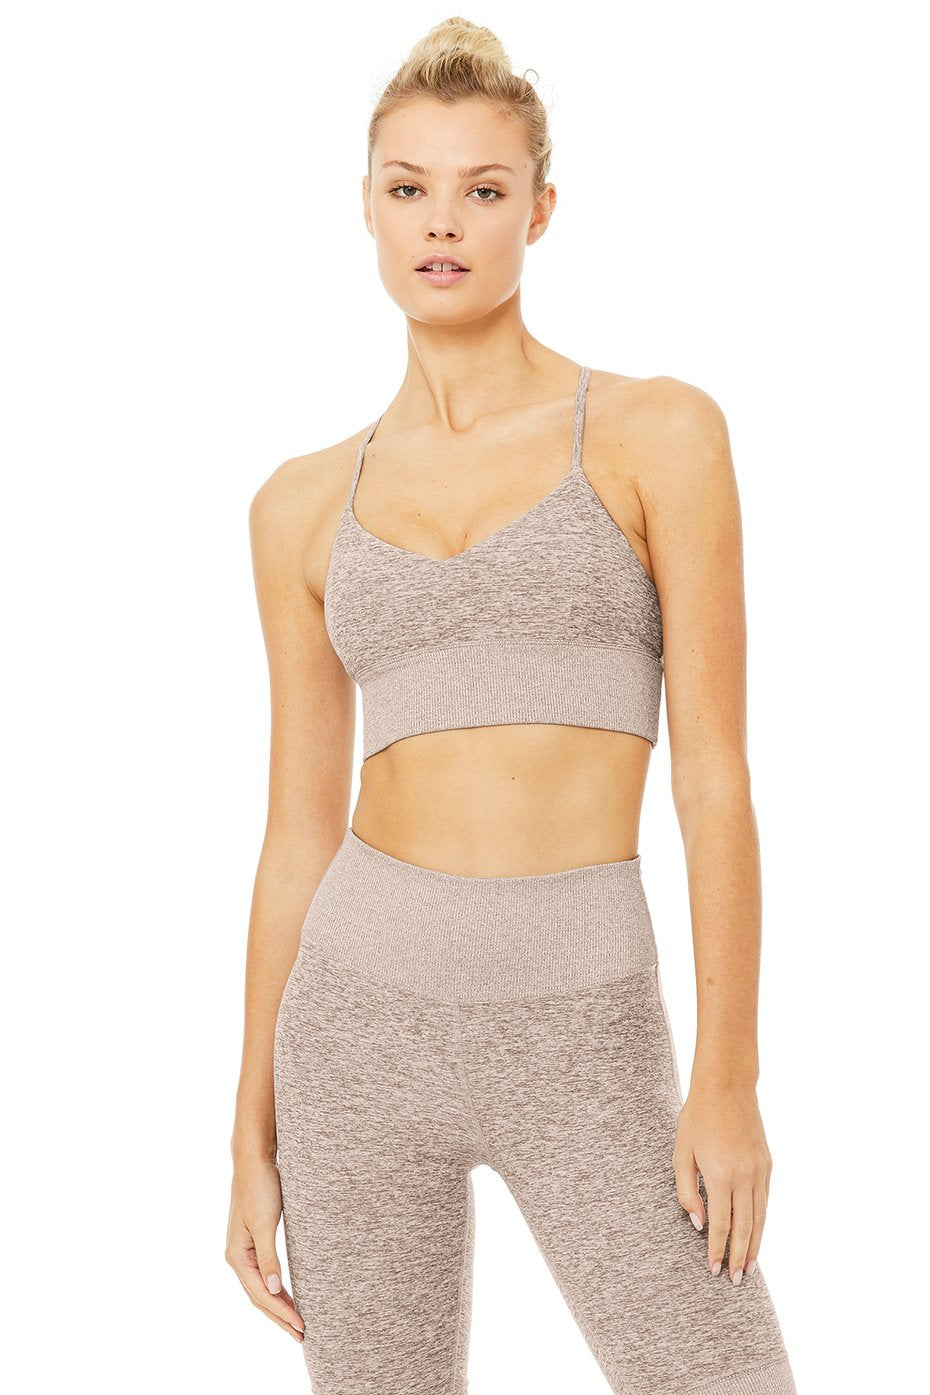 Alo Yoga MEDIUM Alosoft Lavish Bra - Gravel Heather